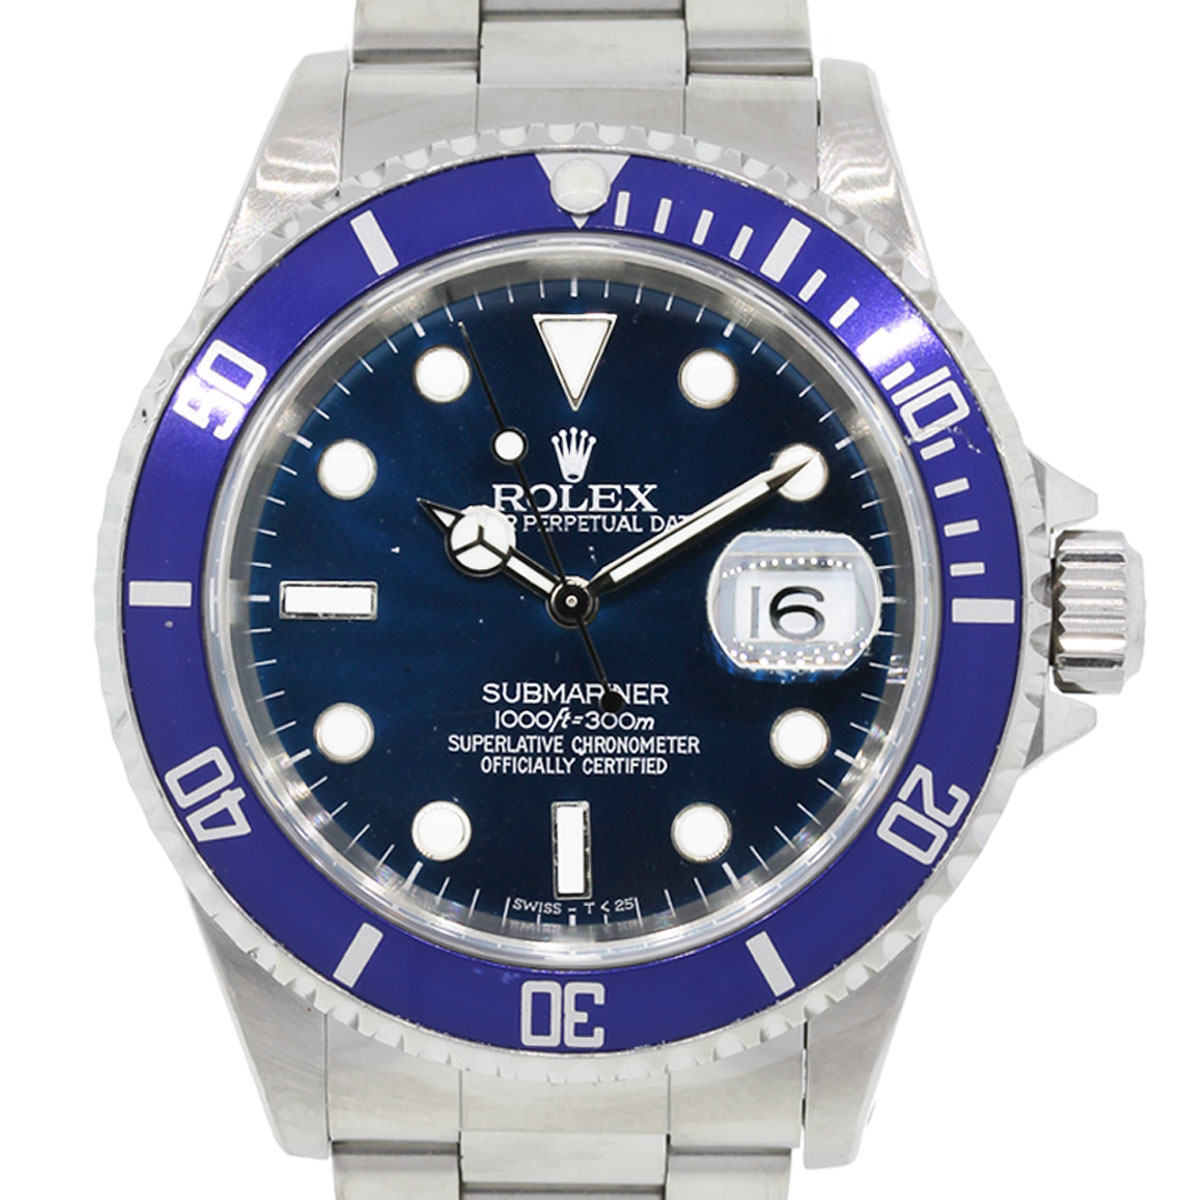 Rolex 16610 Submariner Blue Bezel Blue Dial Watch